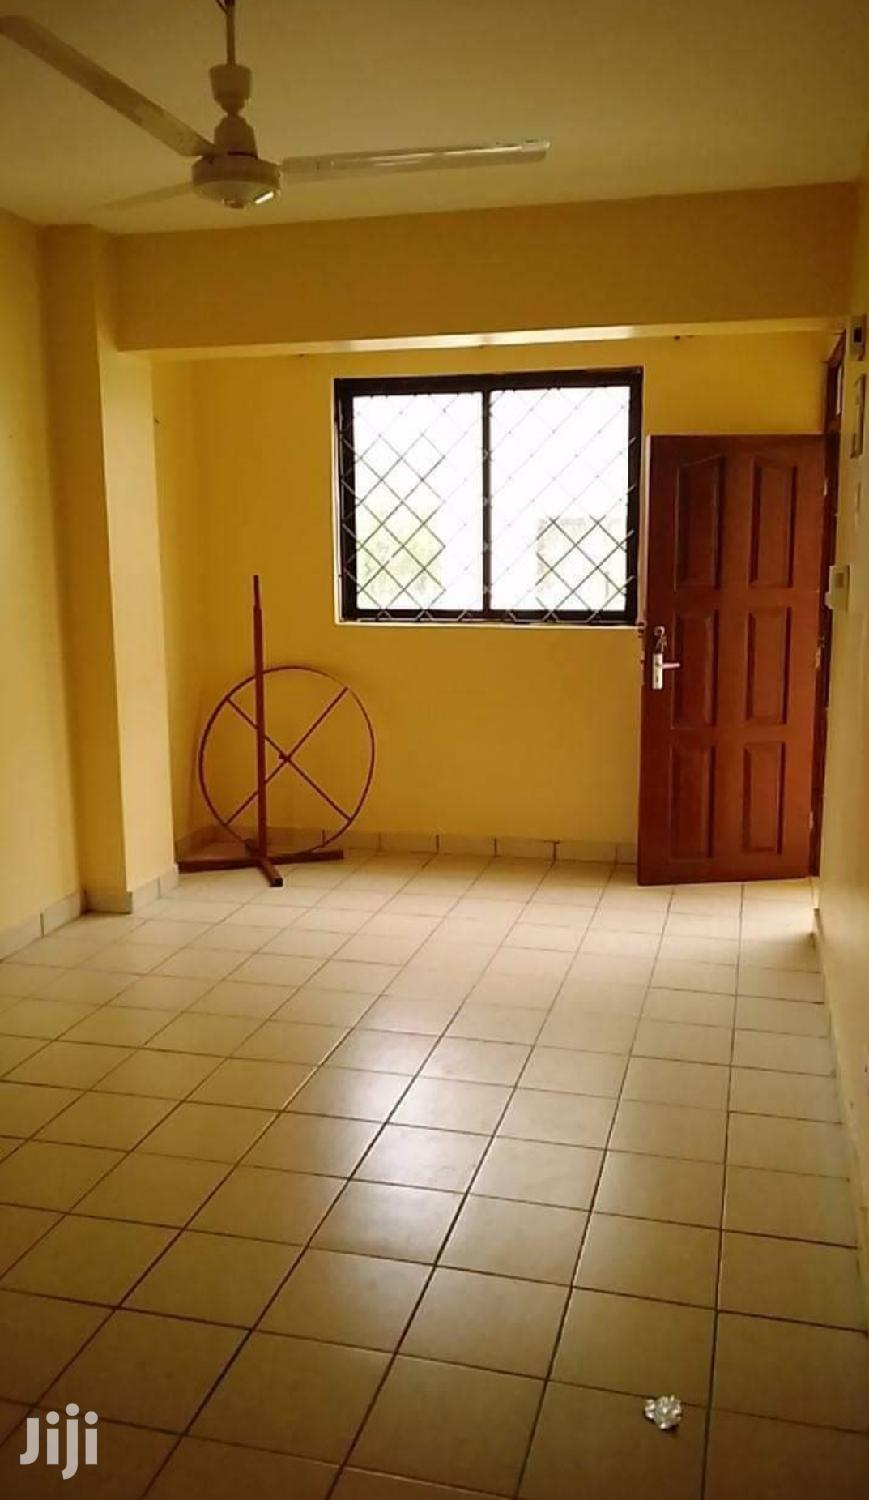 Two Bedrooms to Rent in Mtwapa | Houses & Apartments For Rent for sale in Mtwapa, Kilifi, Kenya